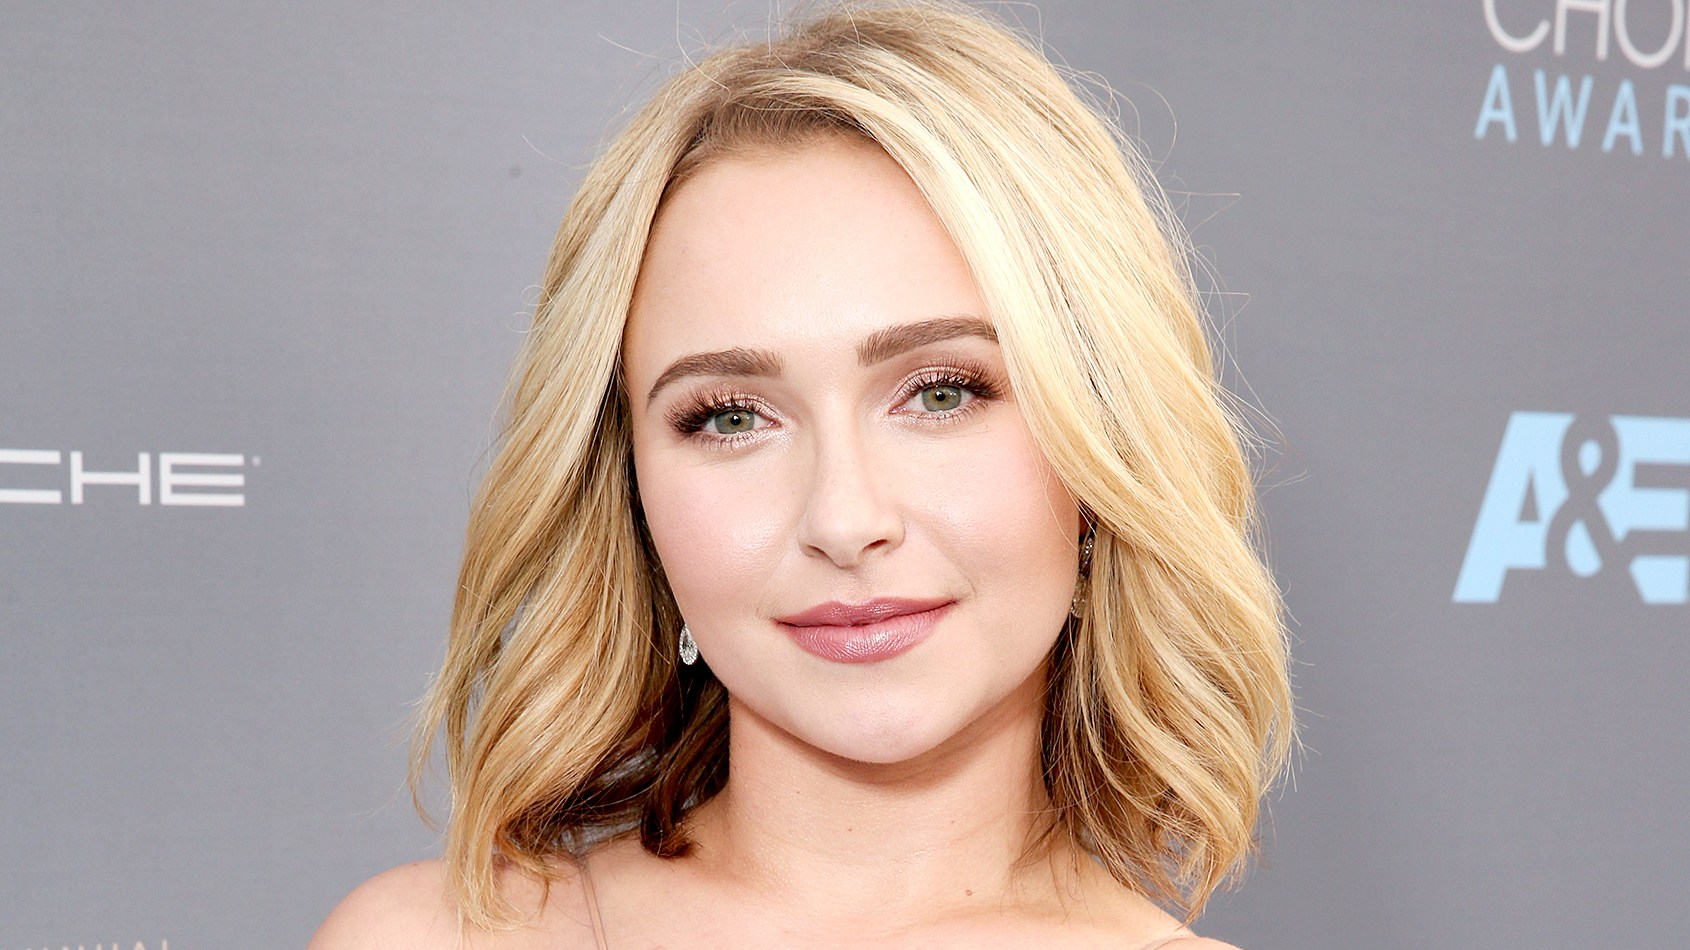 Hayden Panettiere attends the 21st Annual Critics' Choice Awards.